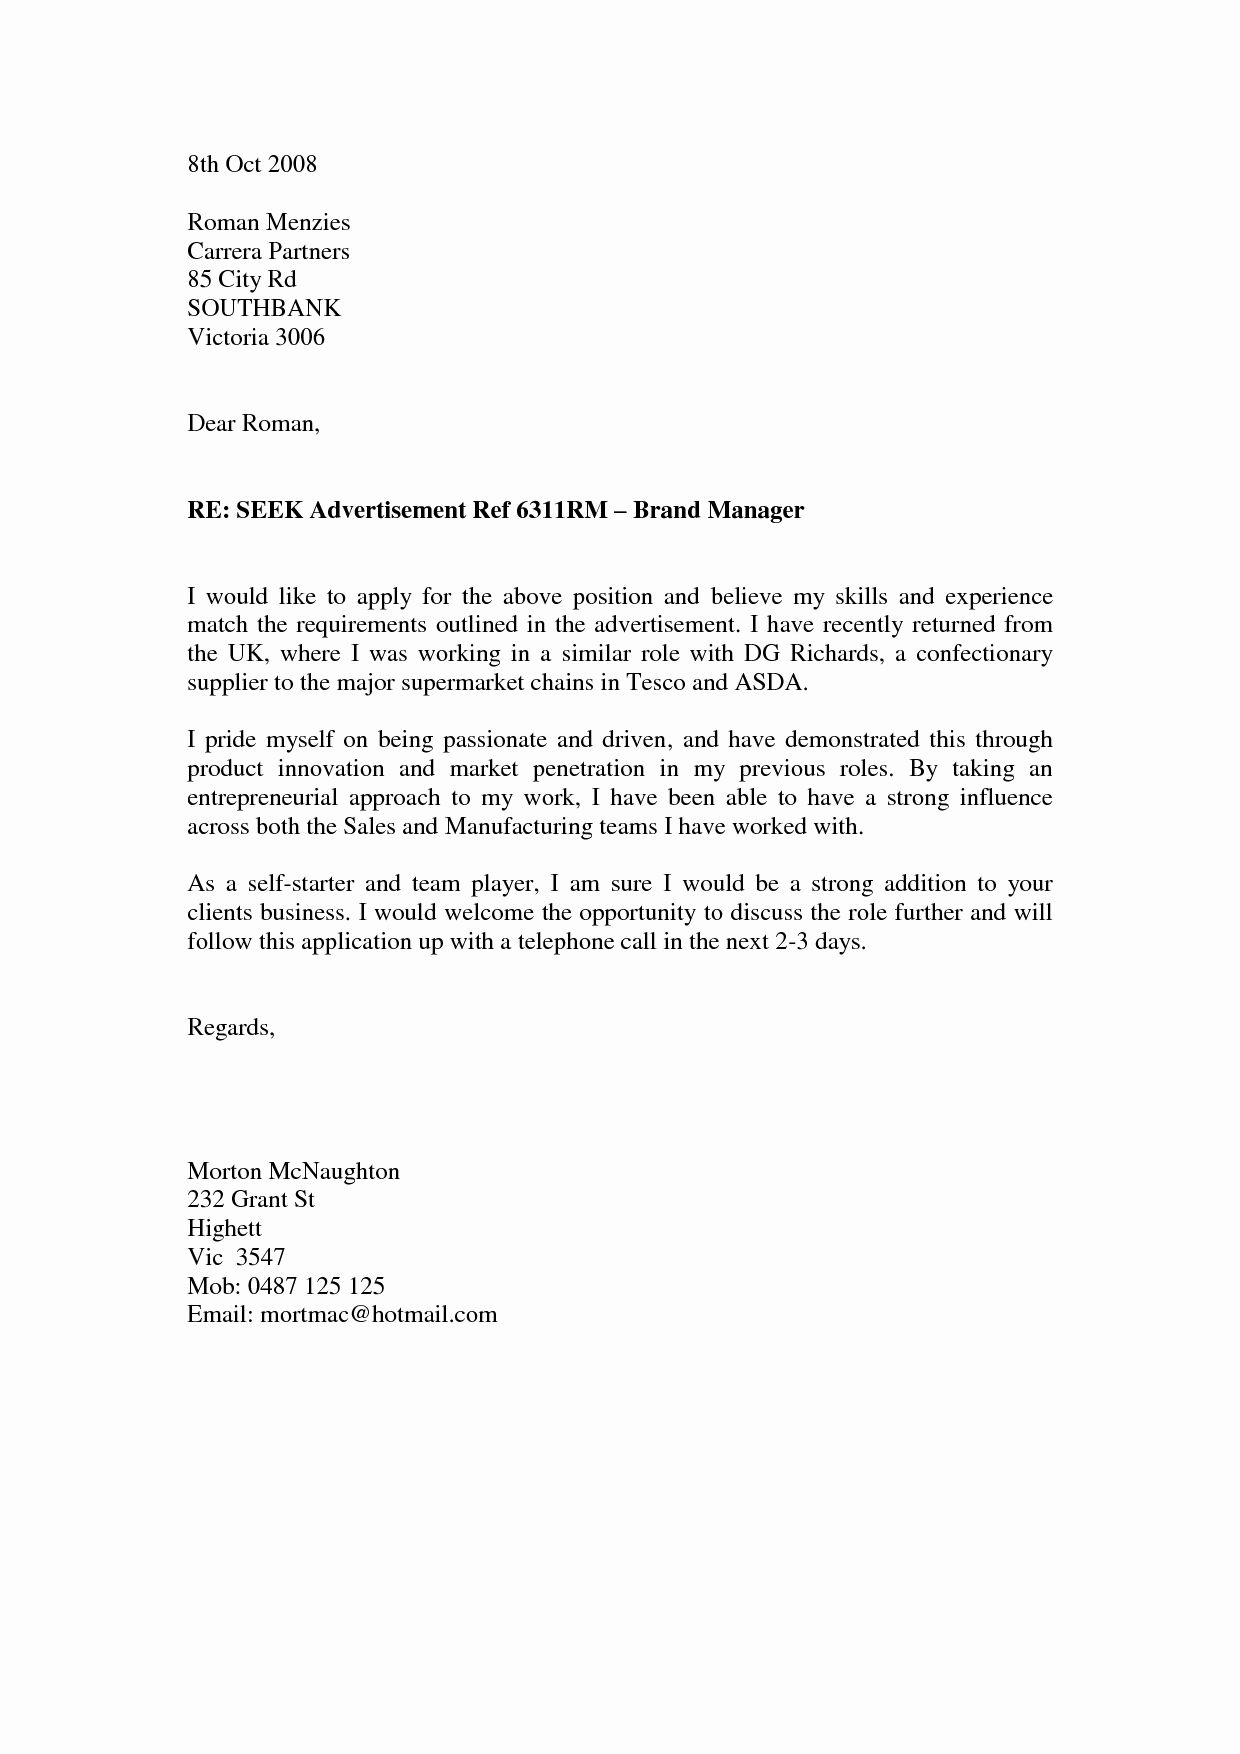 Cover Letter Template Uk No Experience Job cover letter